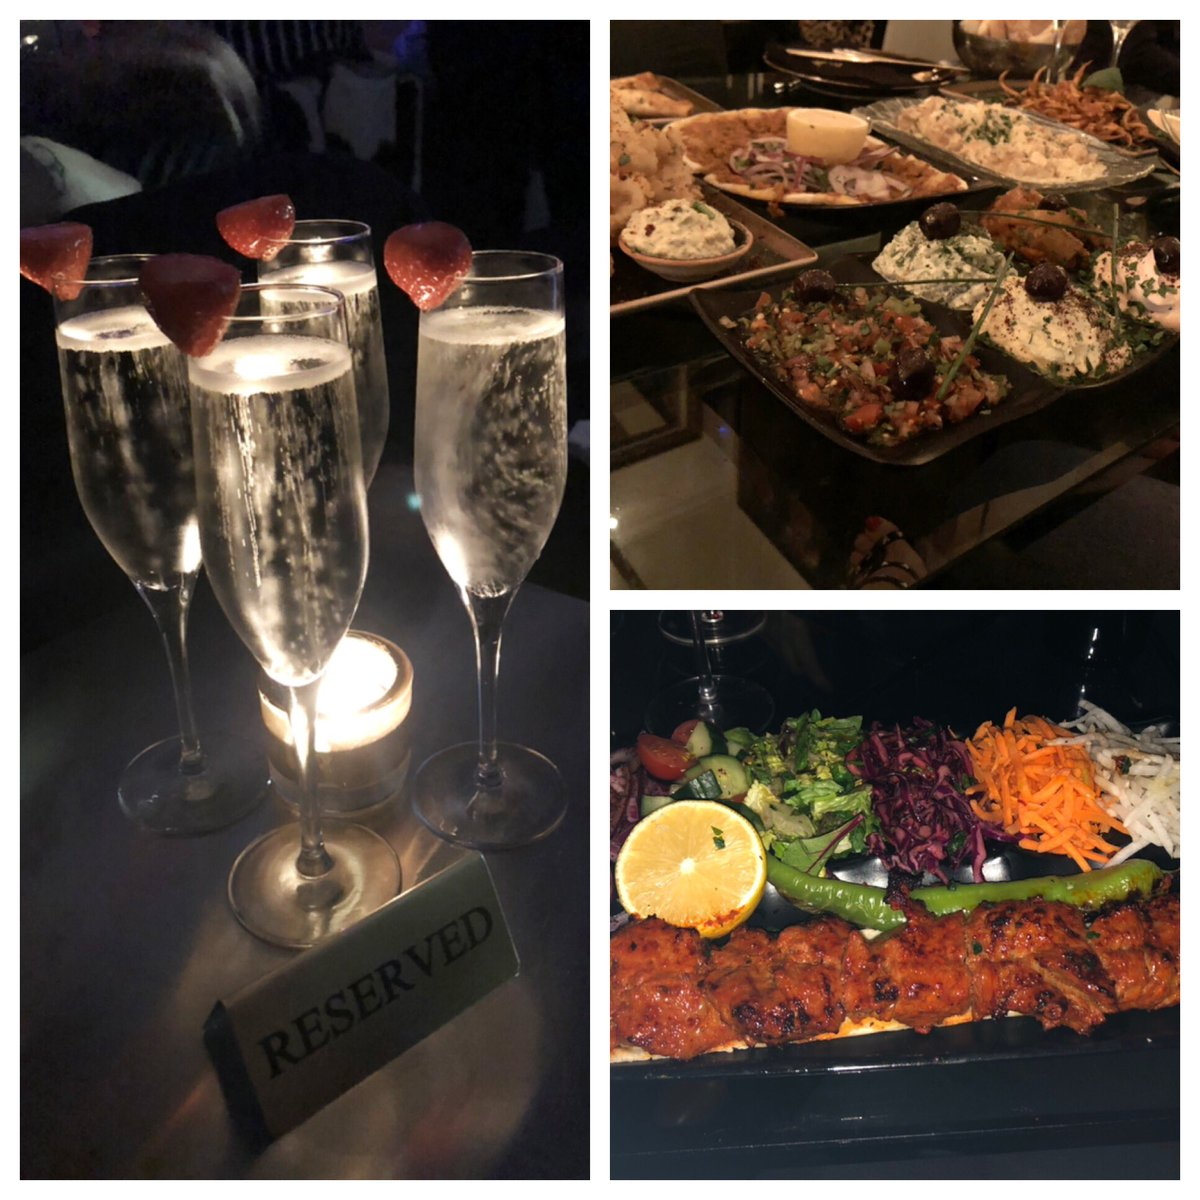 SheeshChigwell photo